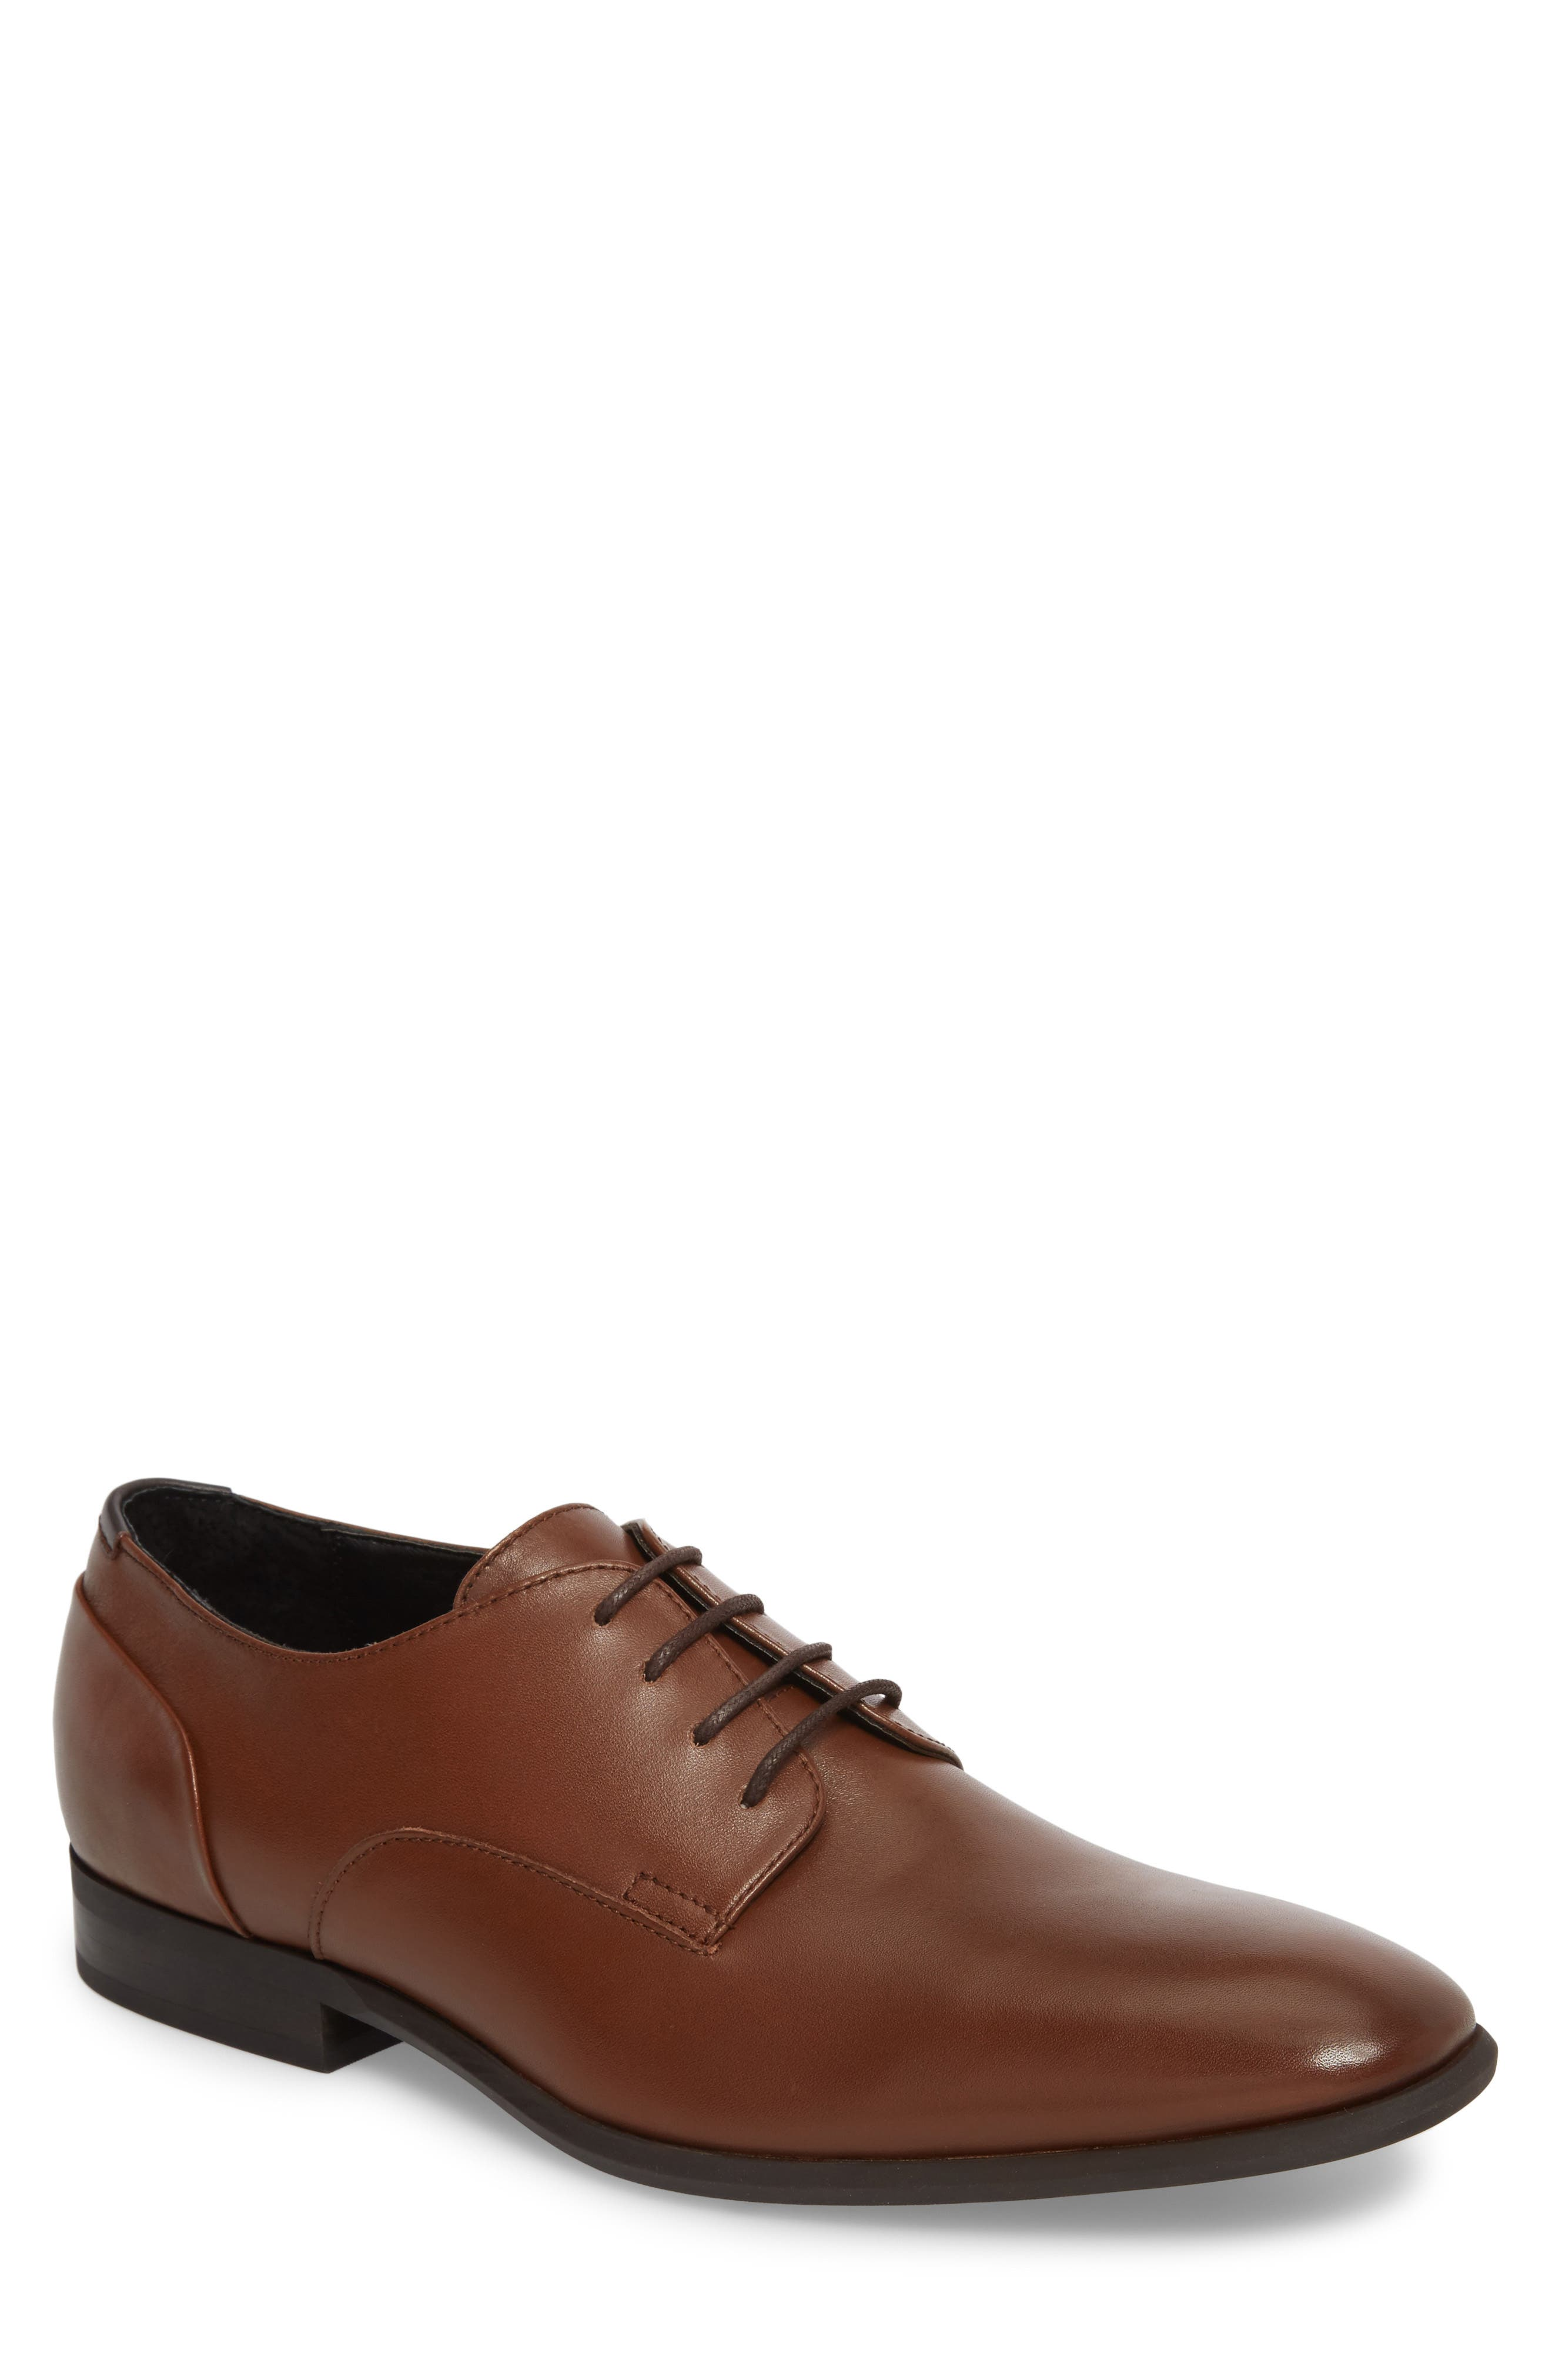 Lucca Plain Toe Derby,                             Main thumbnail 1, color,                             Tan Leather